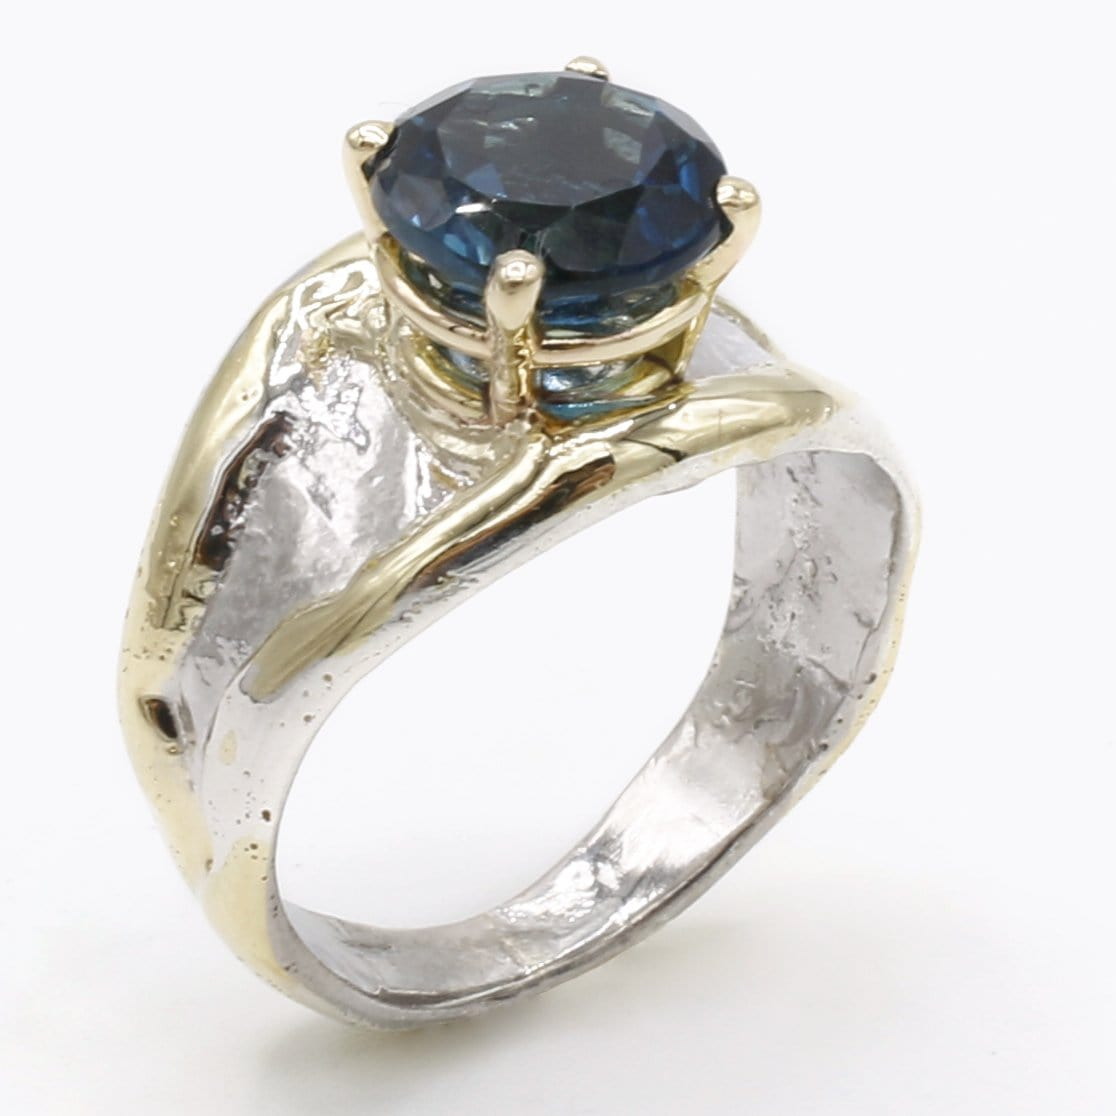 14K Gold & Crystalline Silver London Blue Topaz Ring - 40343-Fusion Designs-Renee Taylor Gallery